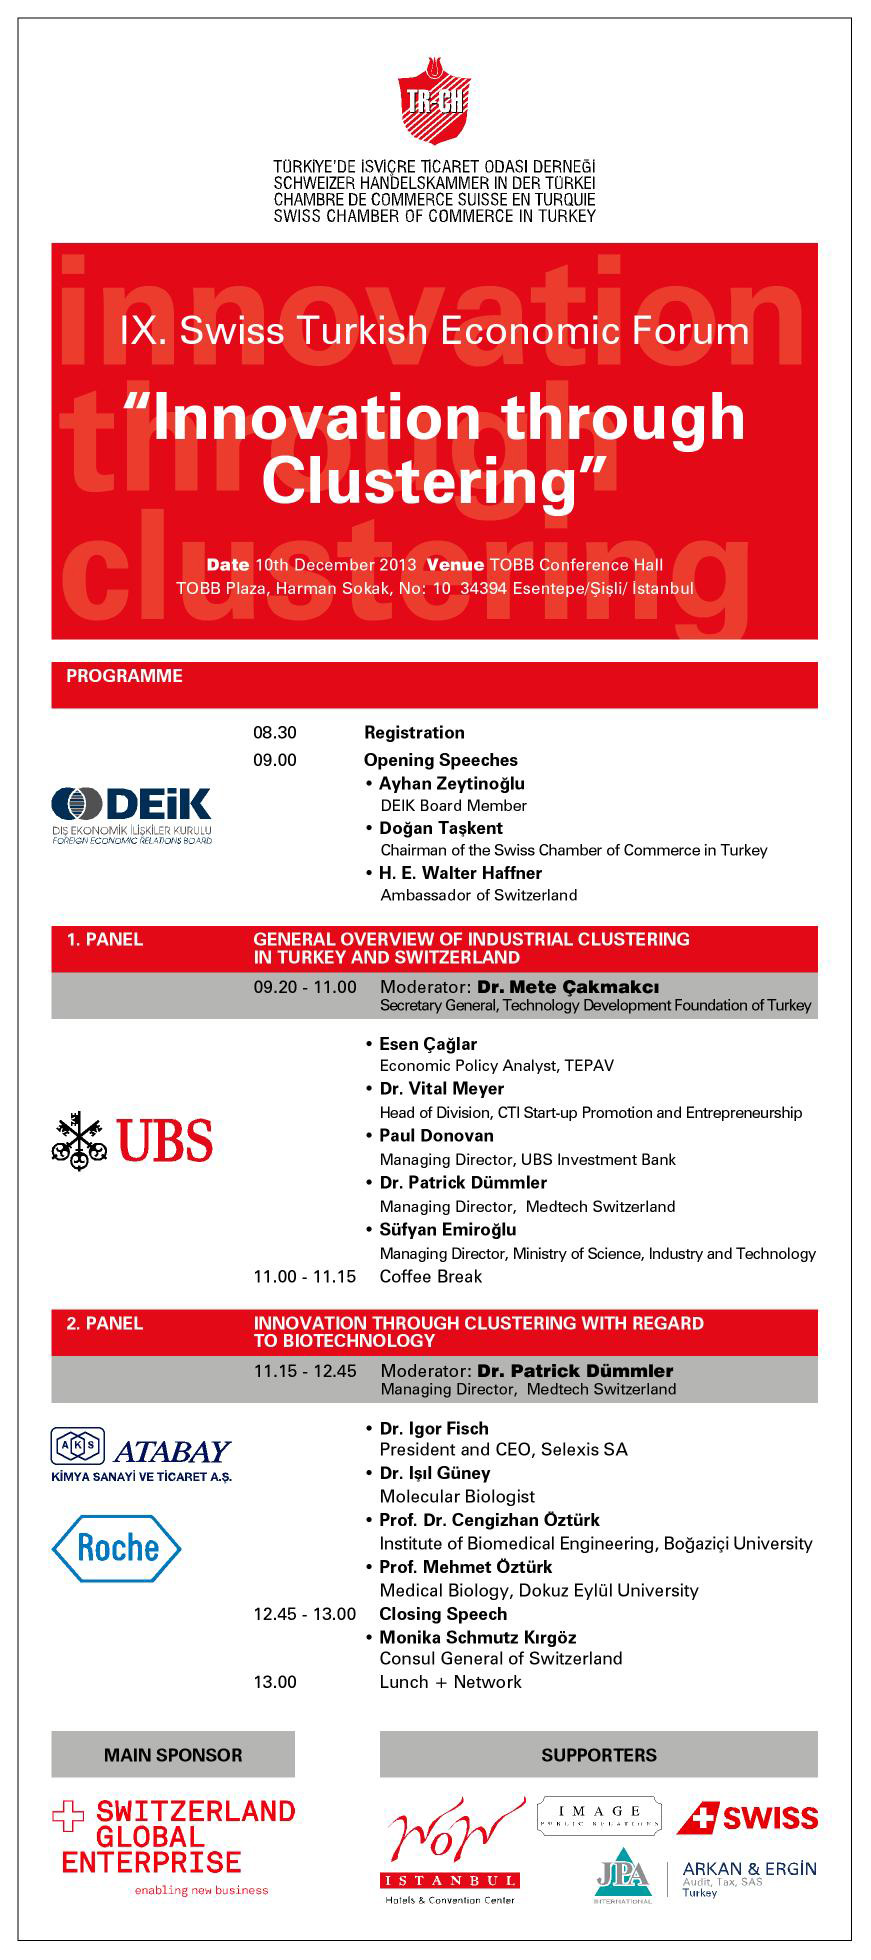 10-december-2013-9th-swiss-turkish-economic-forum